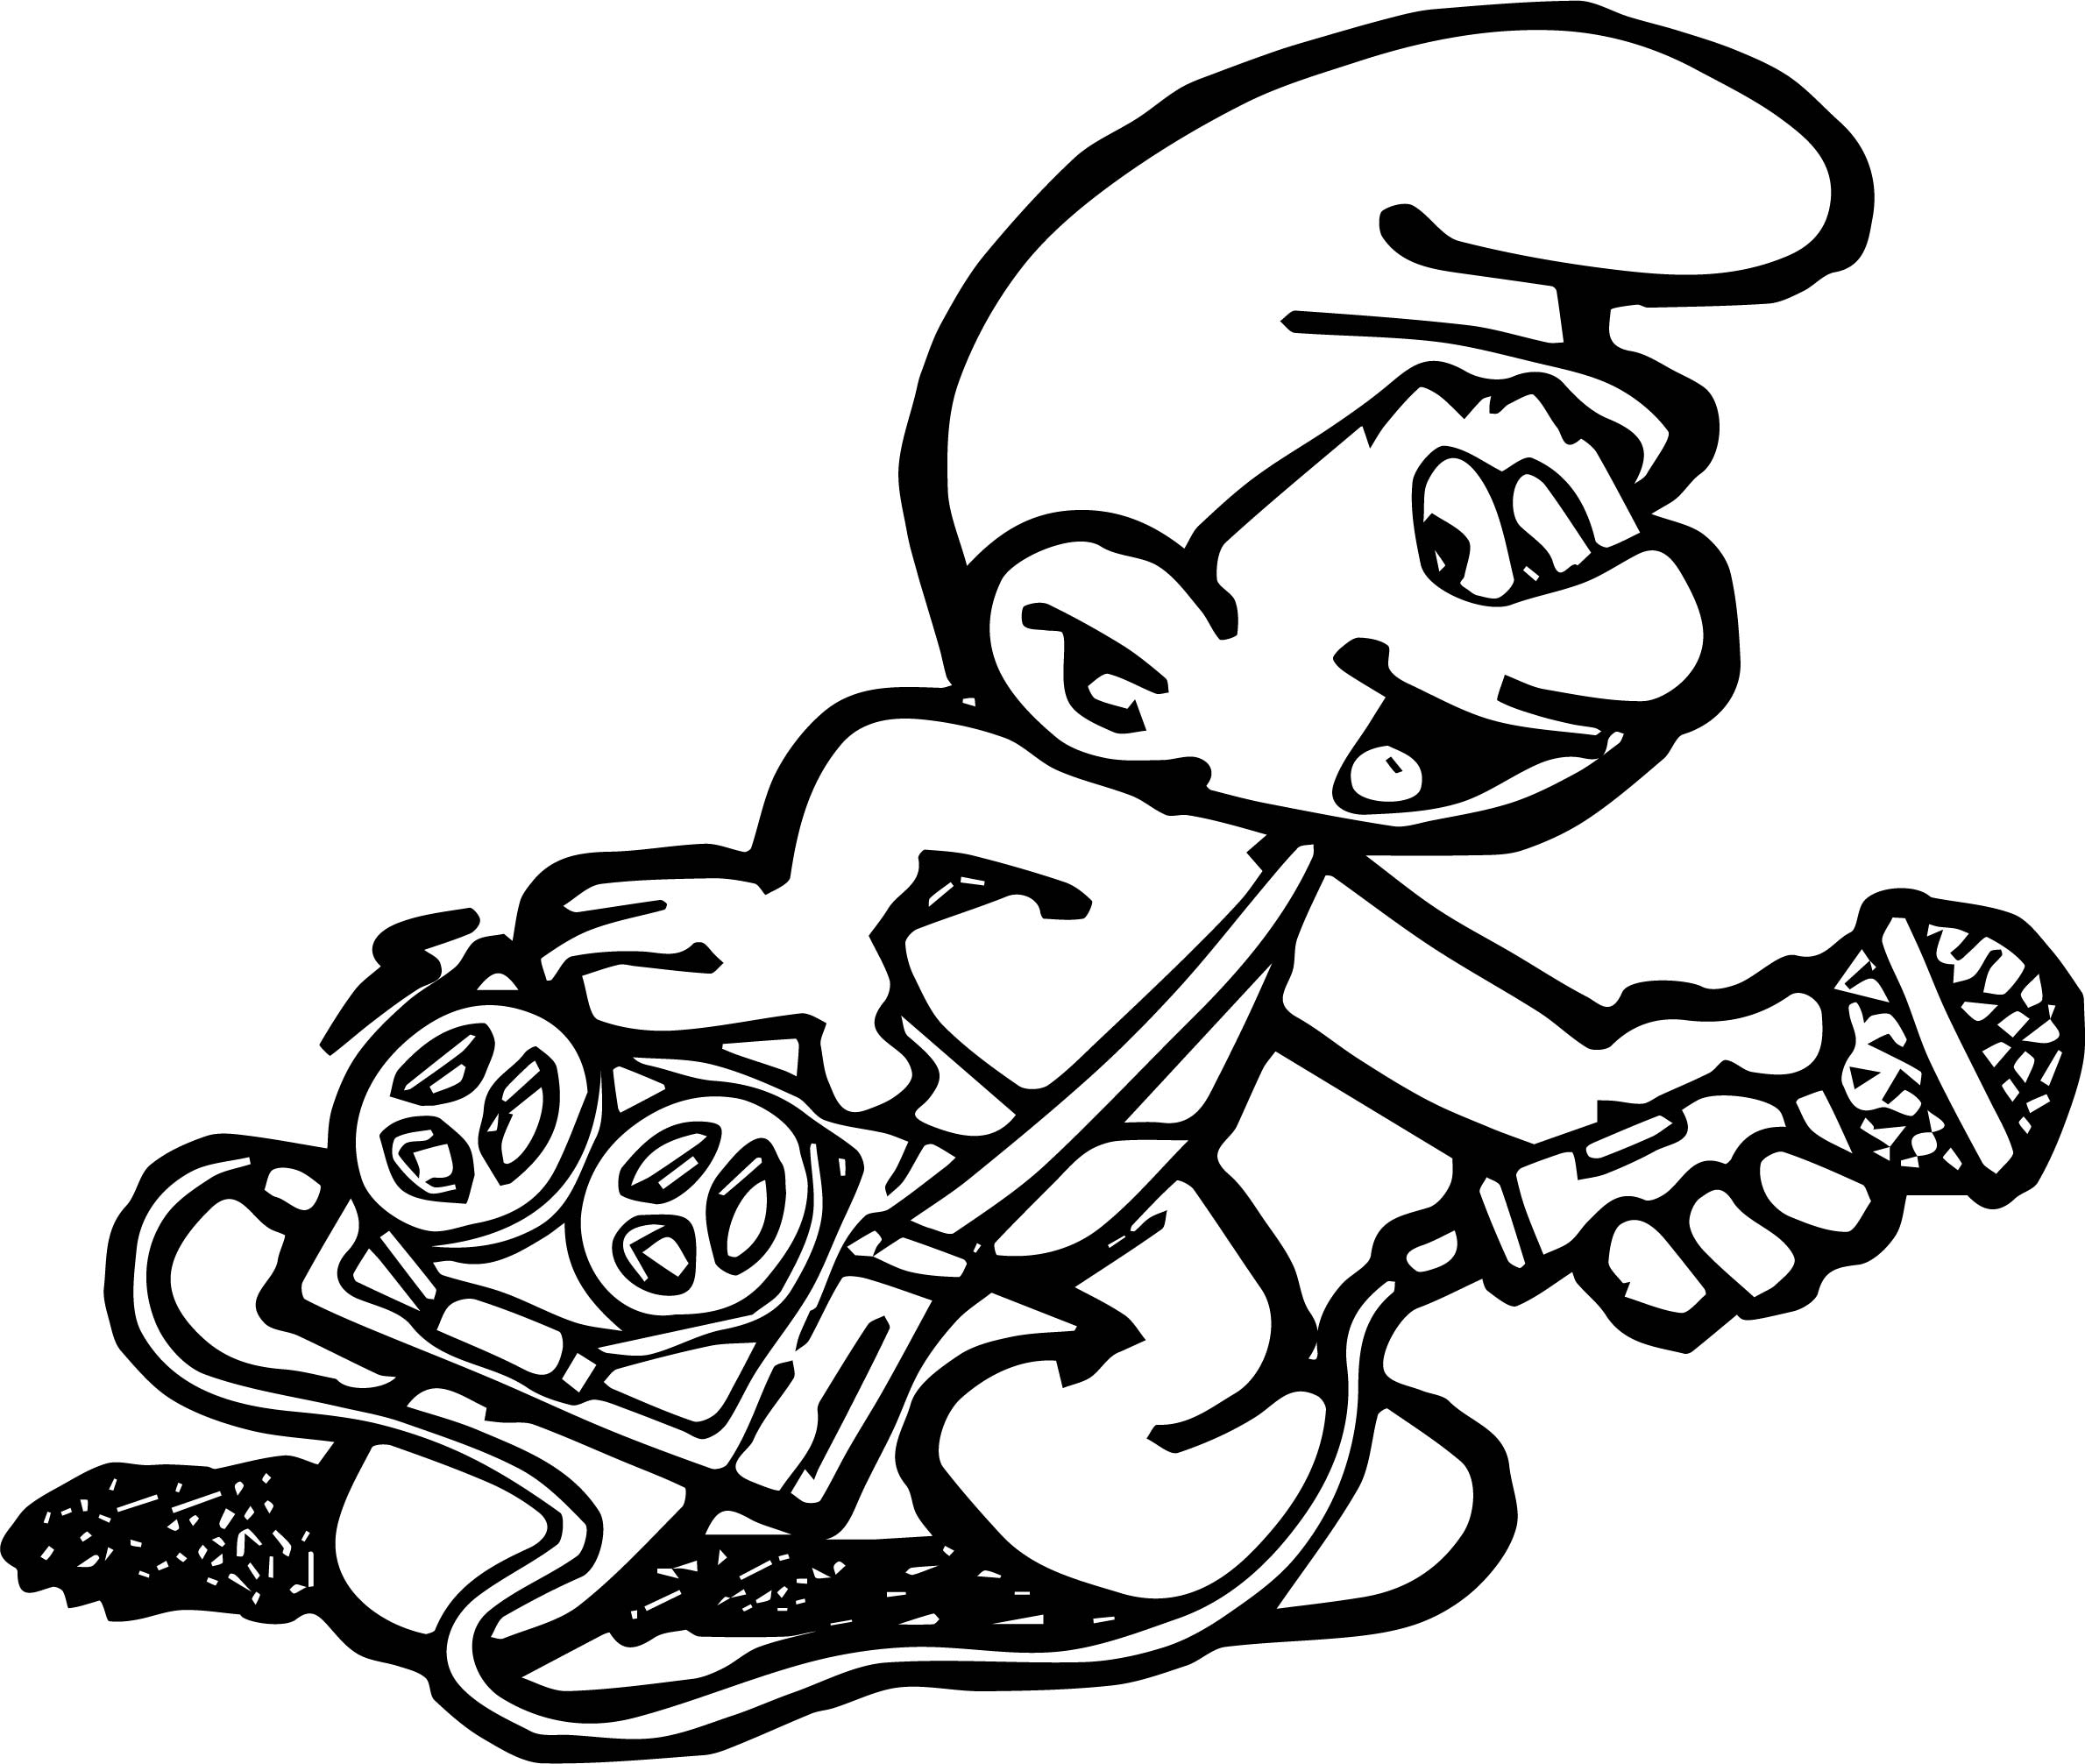 Smurf Coloring Page Music Player Smurf Coloring Page